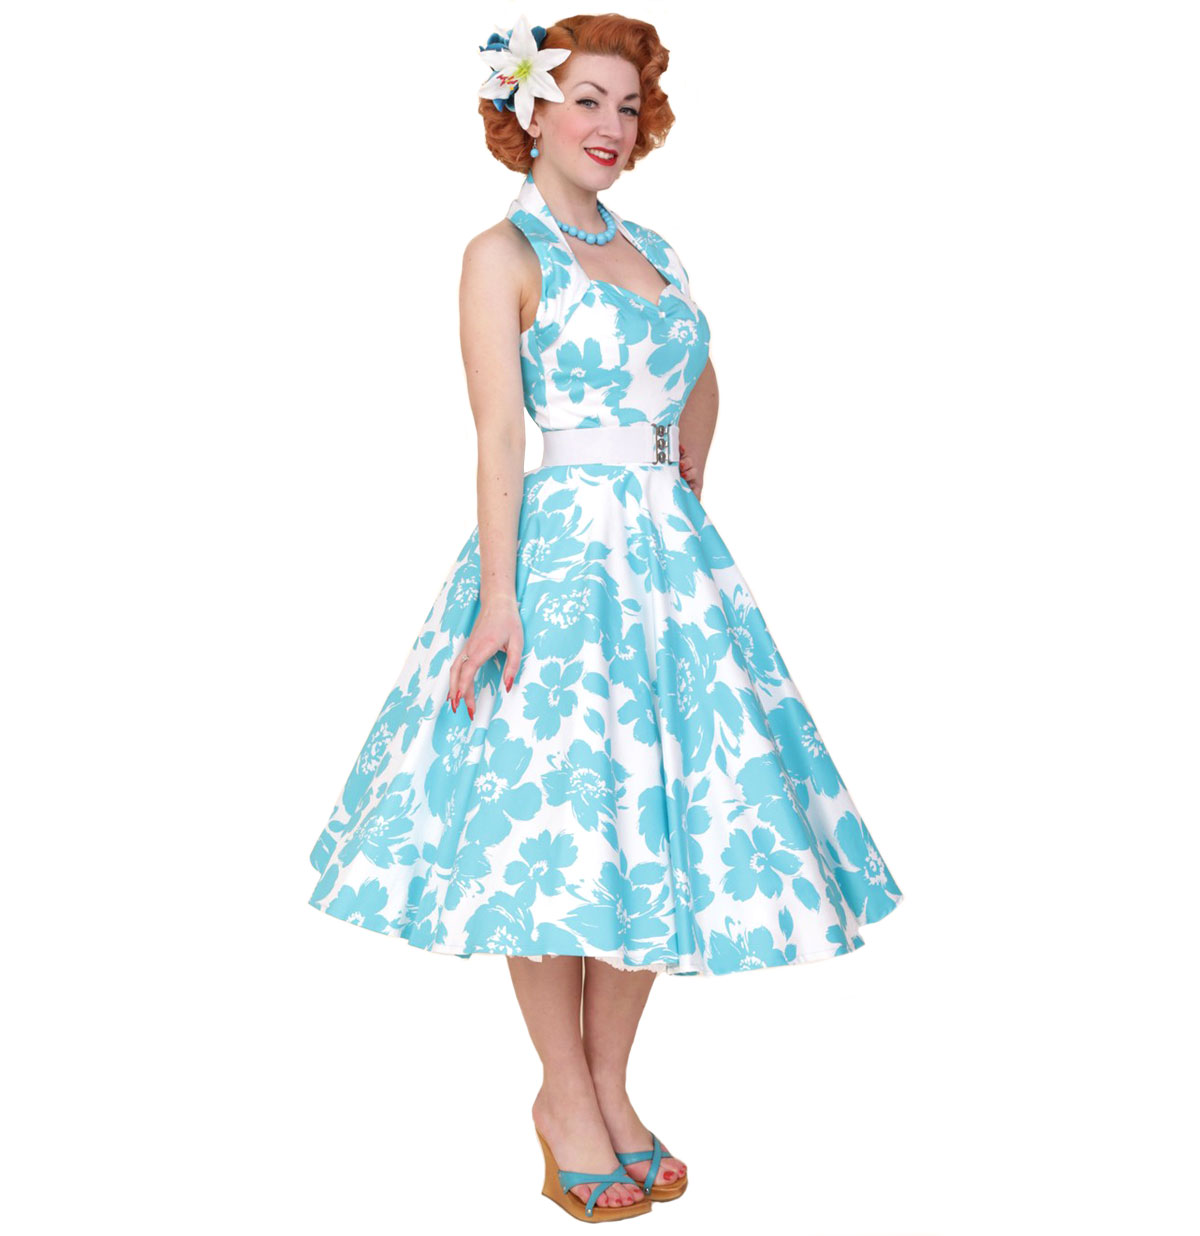 Turquoise Floral Dress White